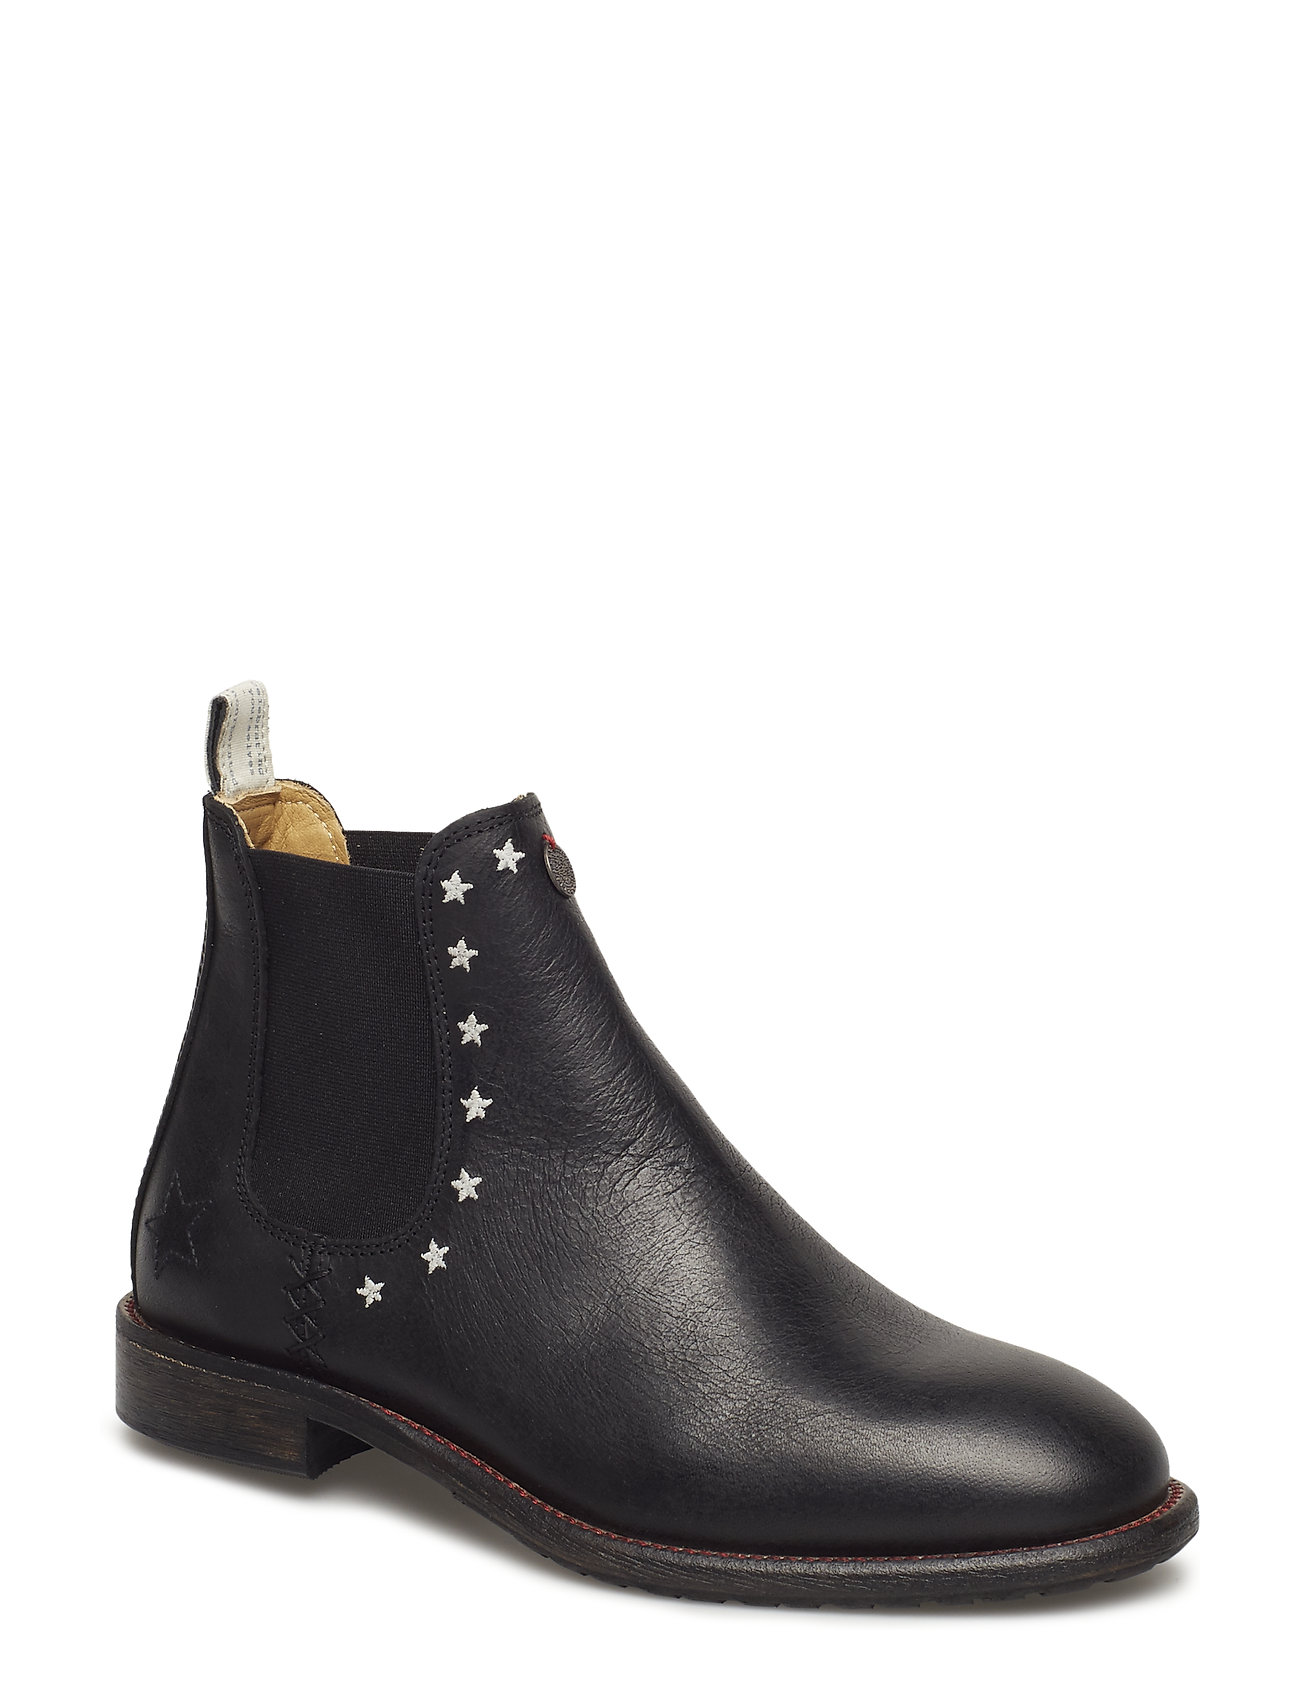 ODD MOLLY mollyhood low leather boot - ALMOST BLACK